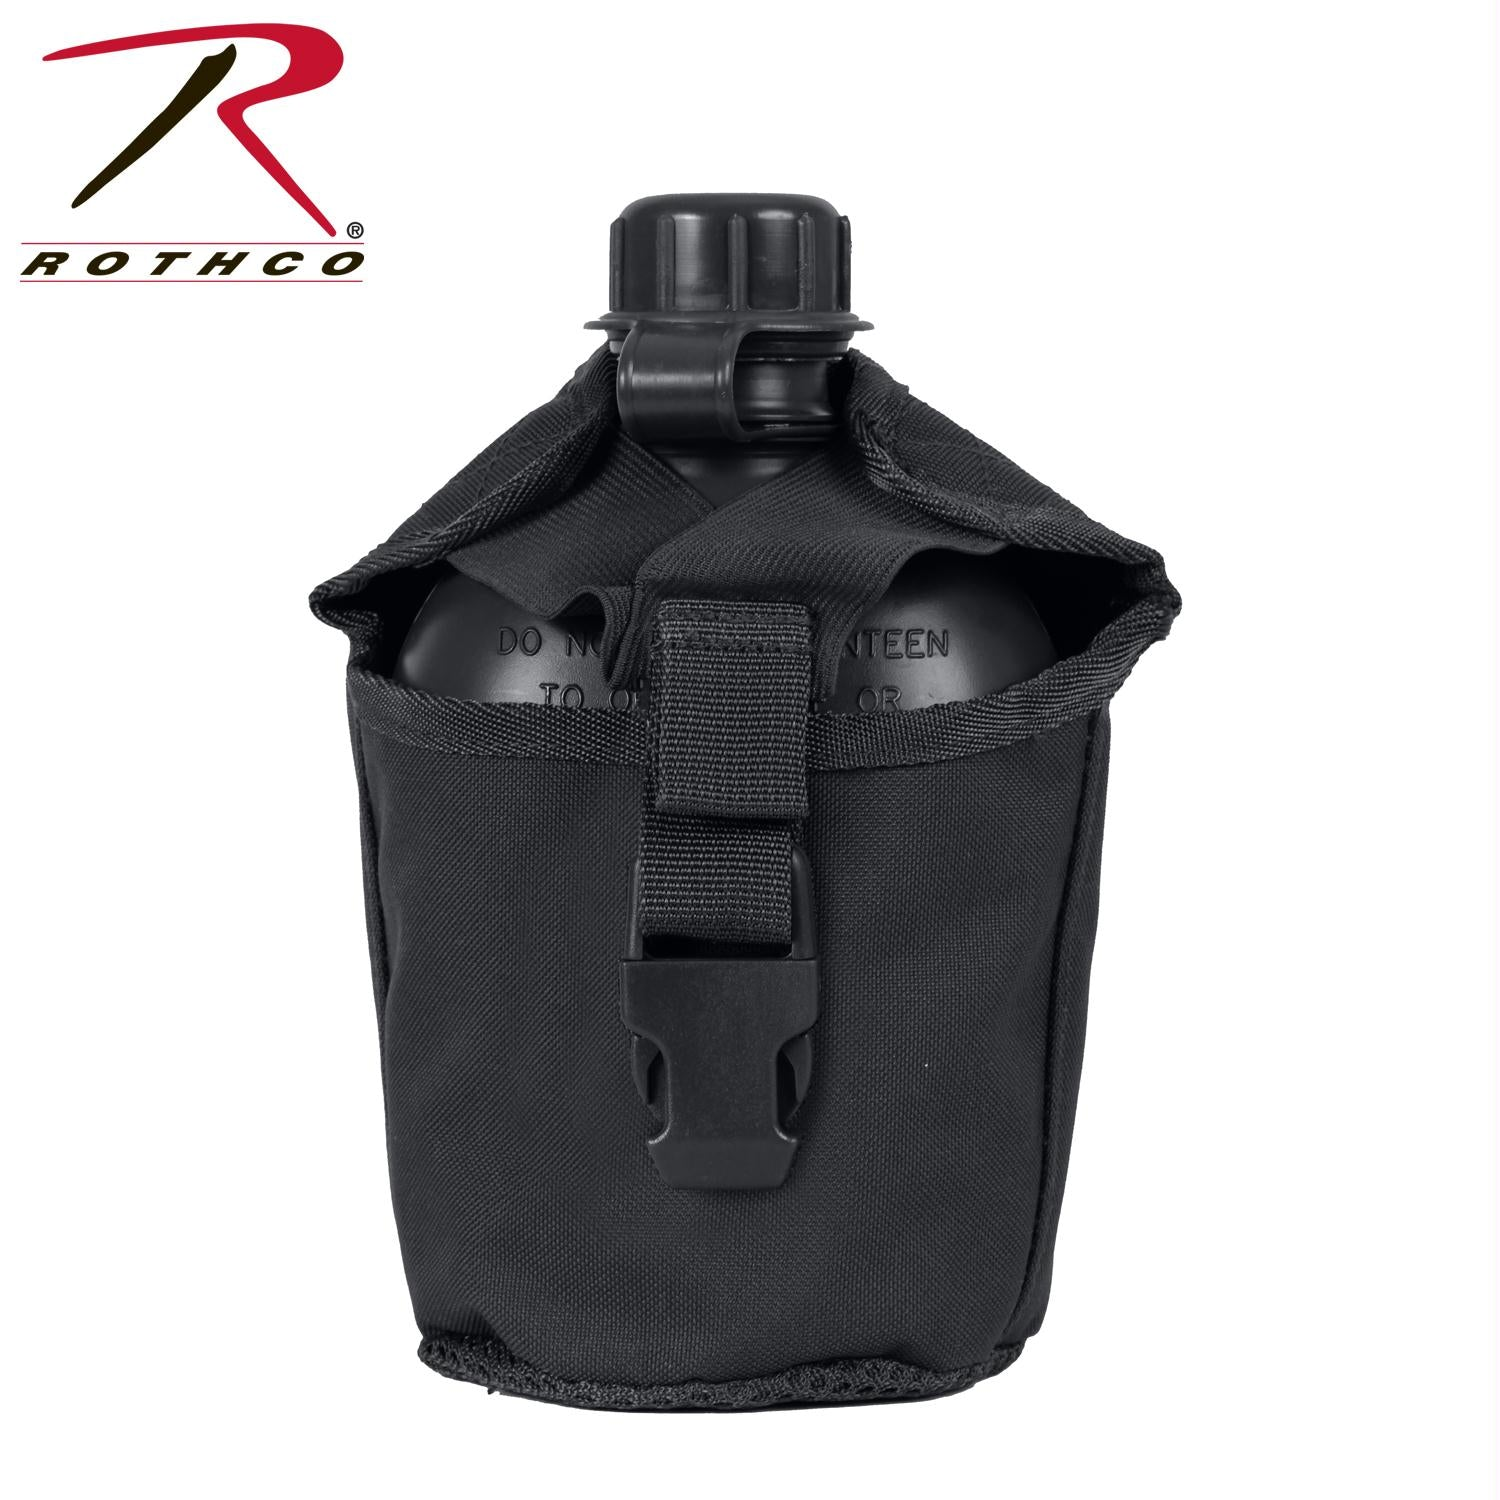 Rothco MOLLE Compatible 1 Quart Canteen Cover - Black